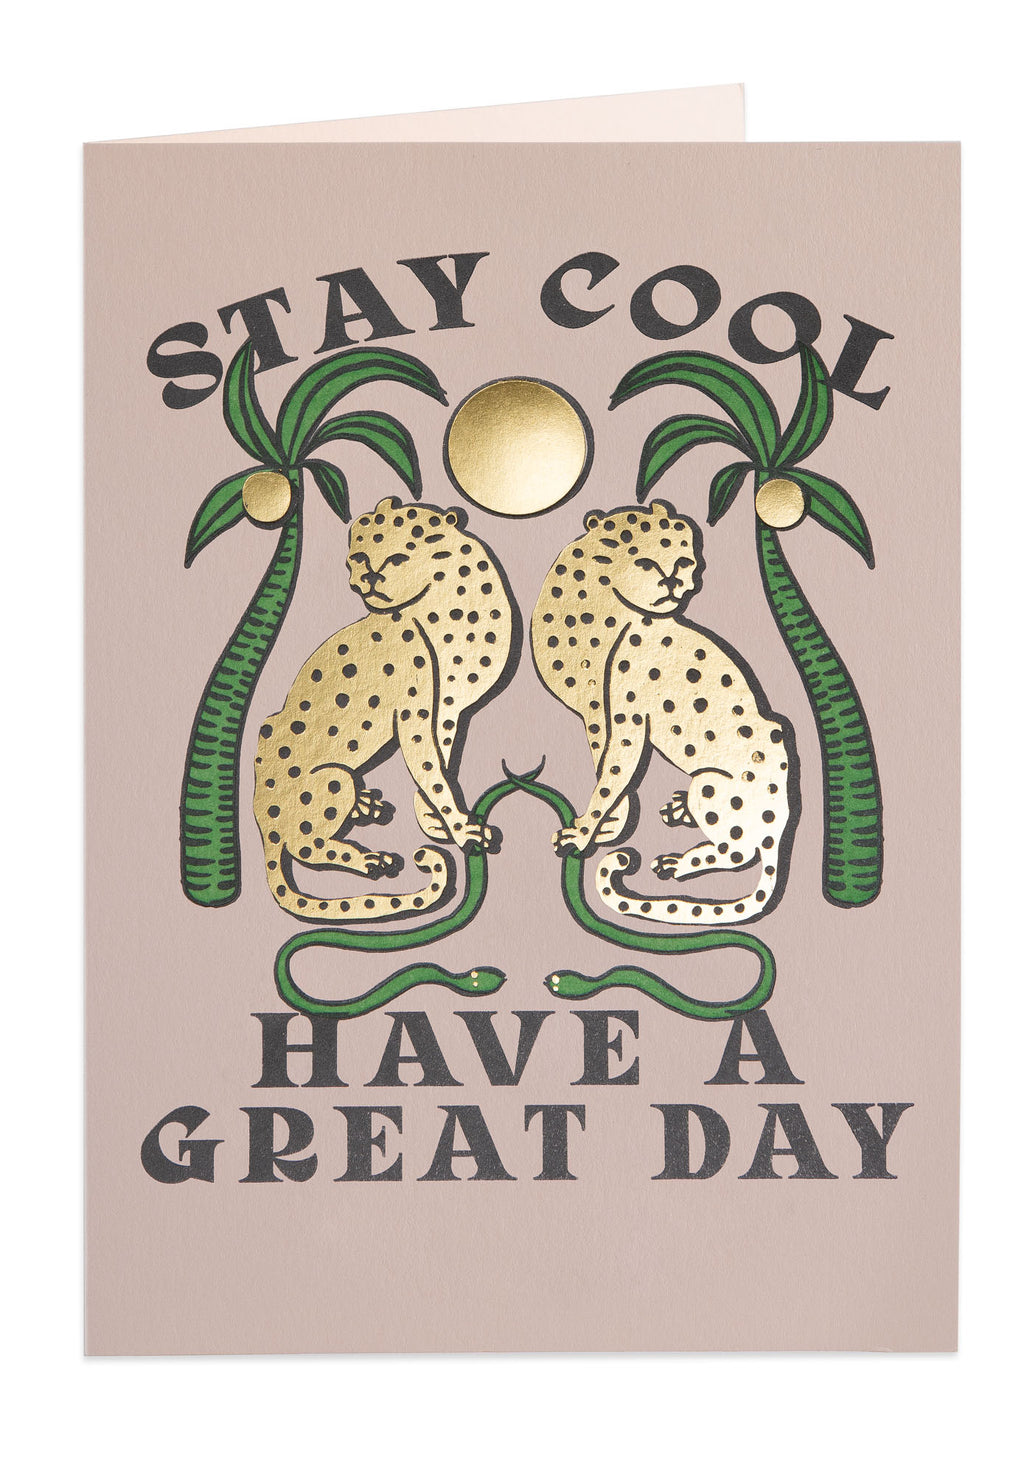 Stay Cool, Have A Great Day card